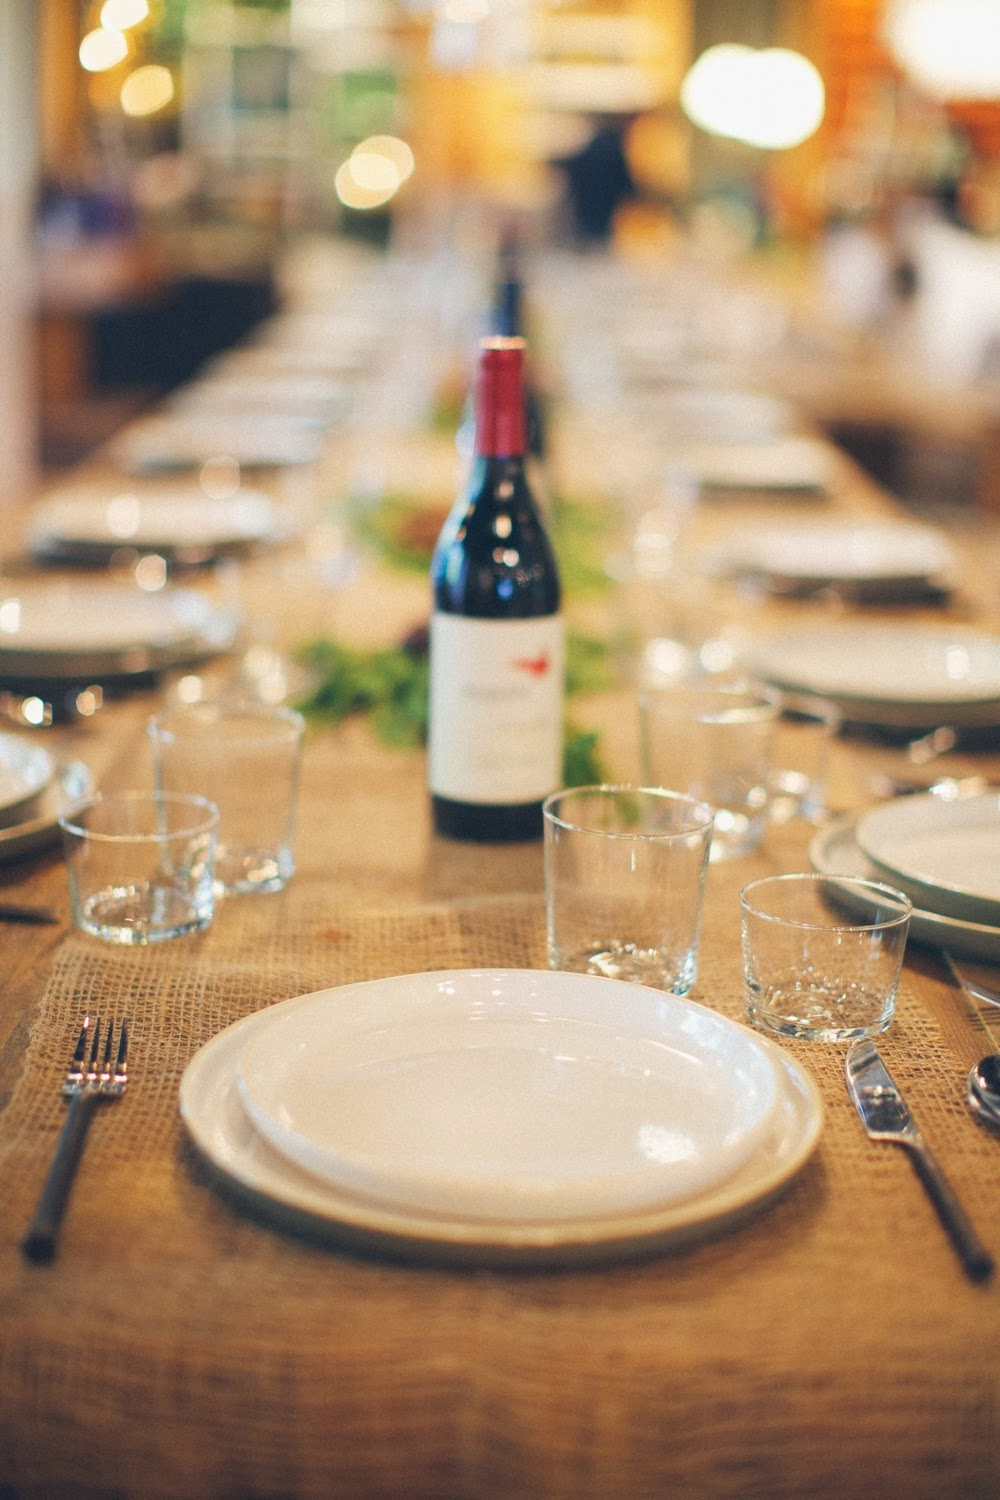 Blog mode, vetements fashion, fashion blog -Kinfolk Dinner at The Metropolitan West Elm - 0